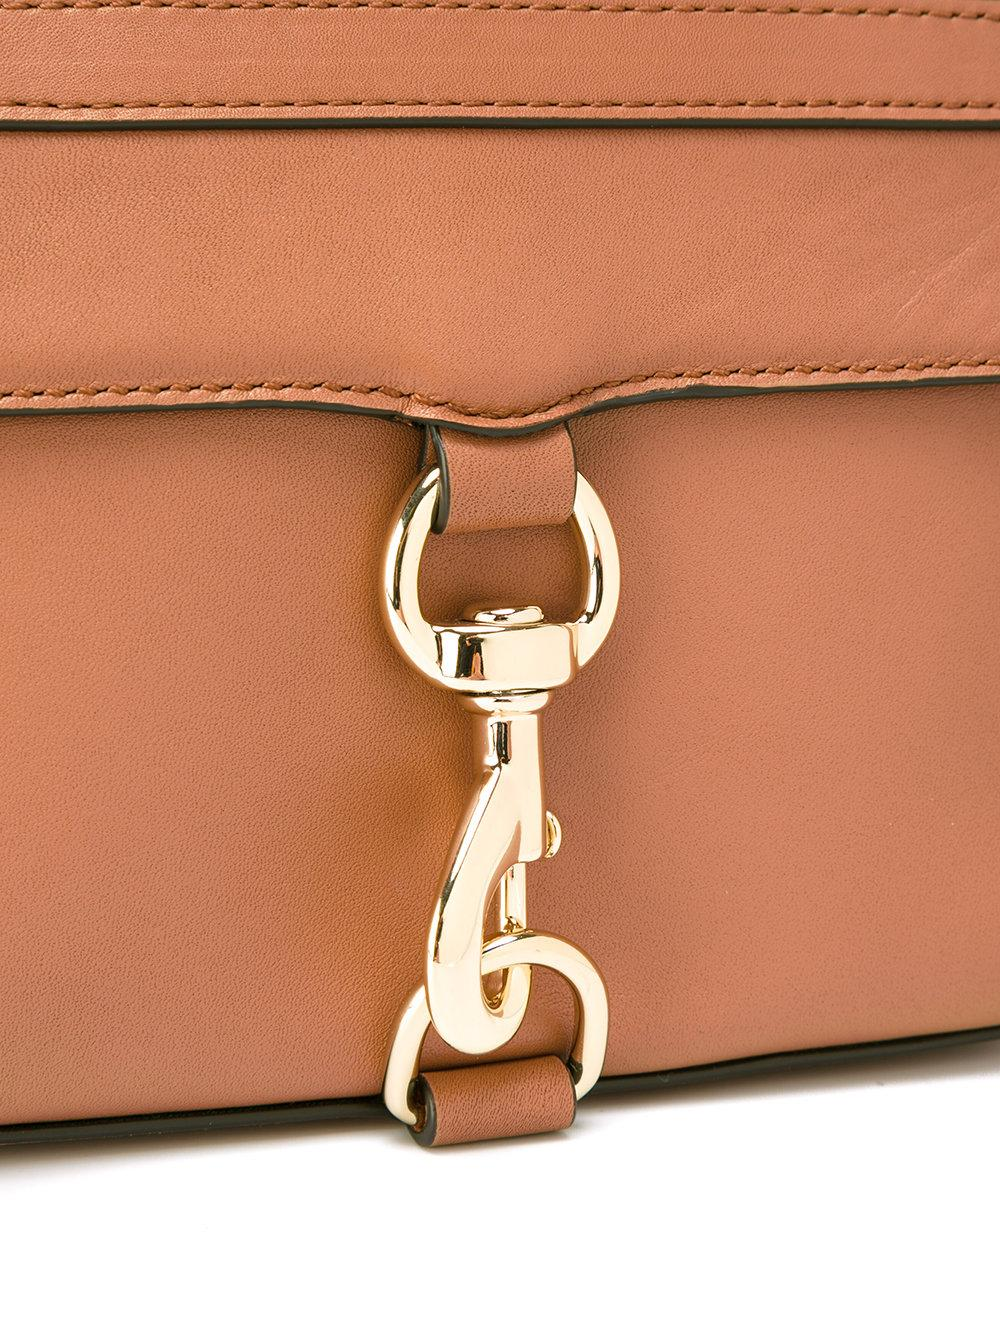 Rebecca Minkoff Leather Camera Bag Crossbody Bag in Brown